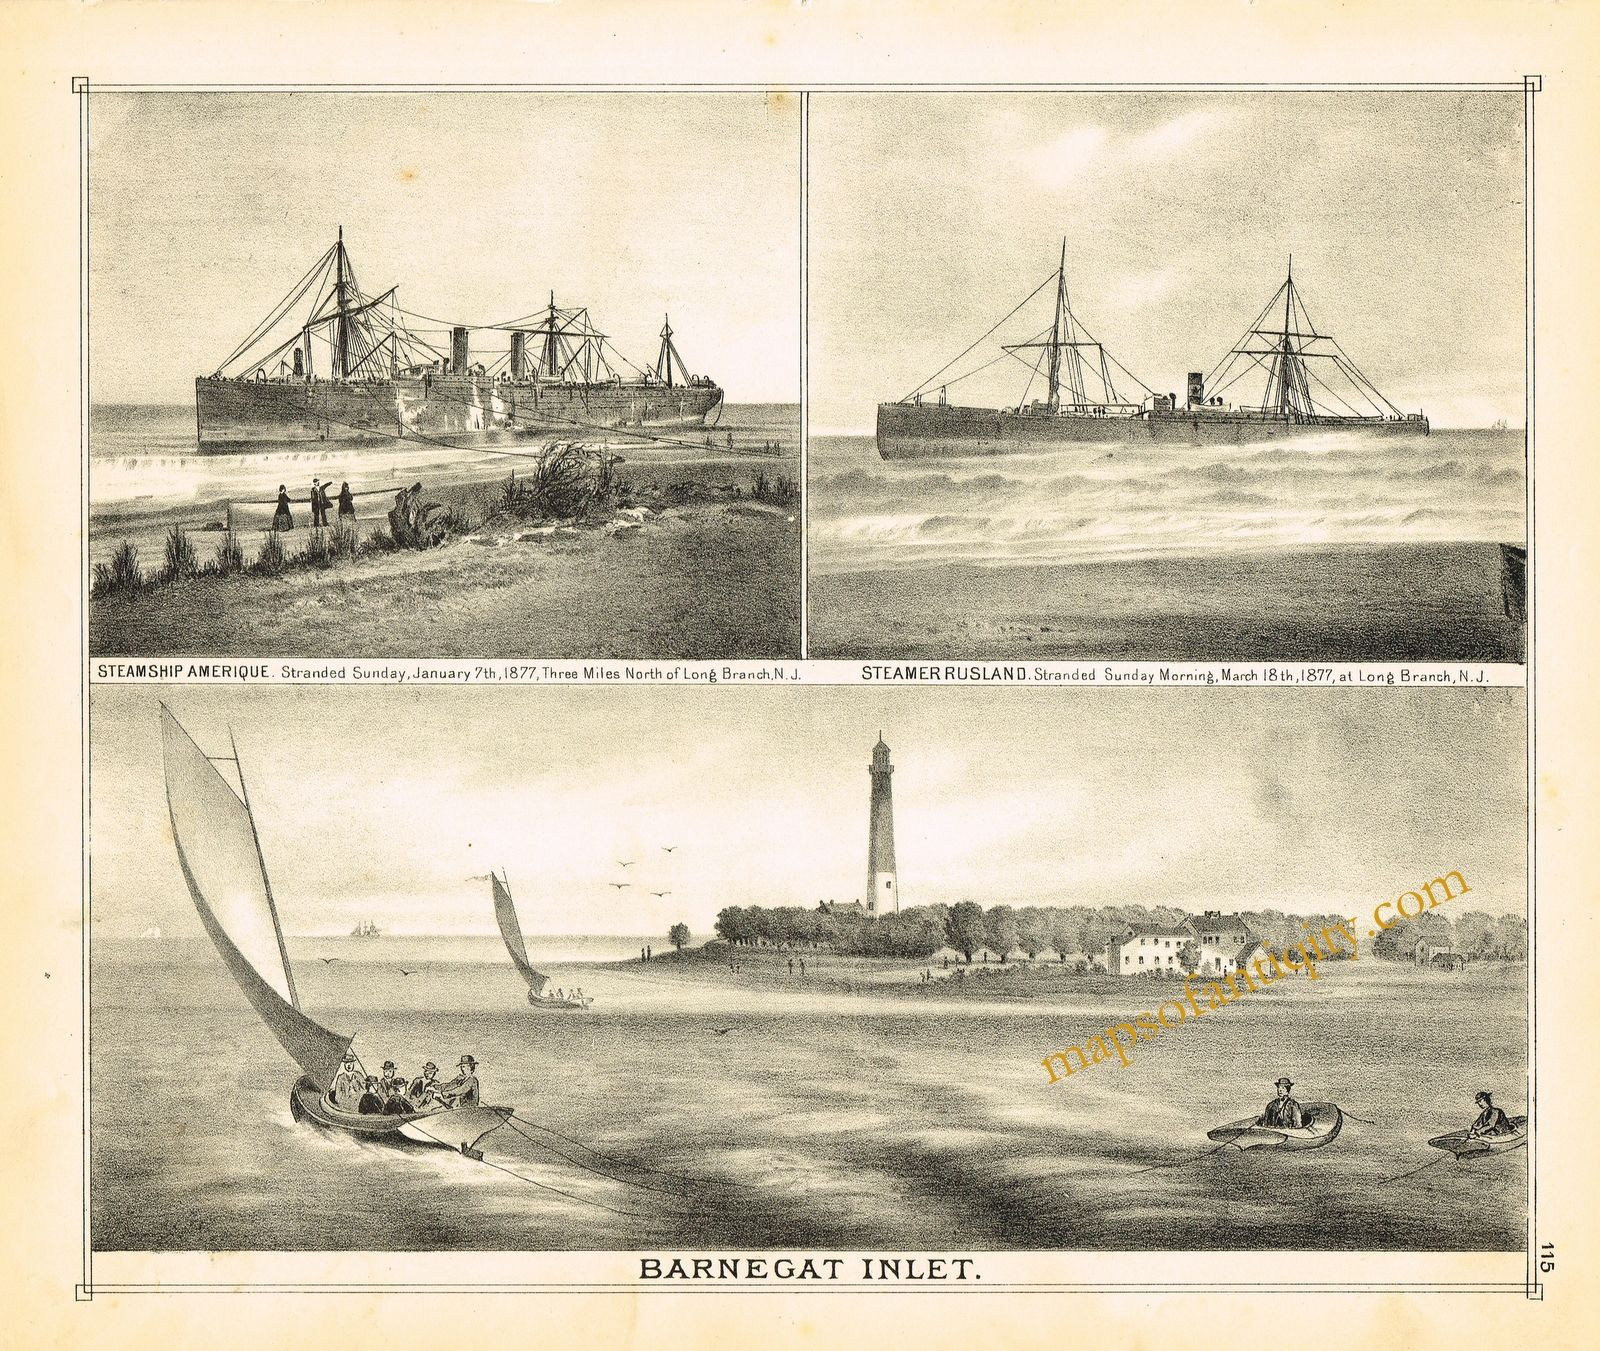 Maps Of Antiquity Antique Nautical Maritime Prints Barnegat Inlet N J Ships And Boats 1878 New Jersey Sailing Sailboats Antique Maps Prints Antiques